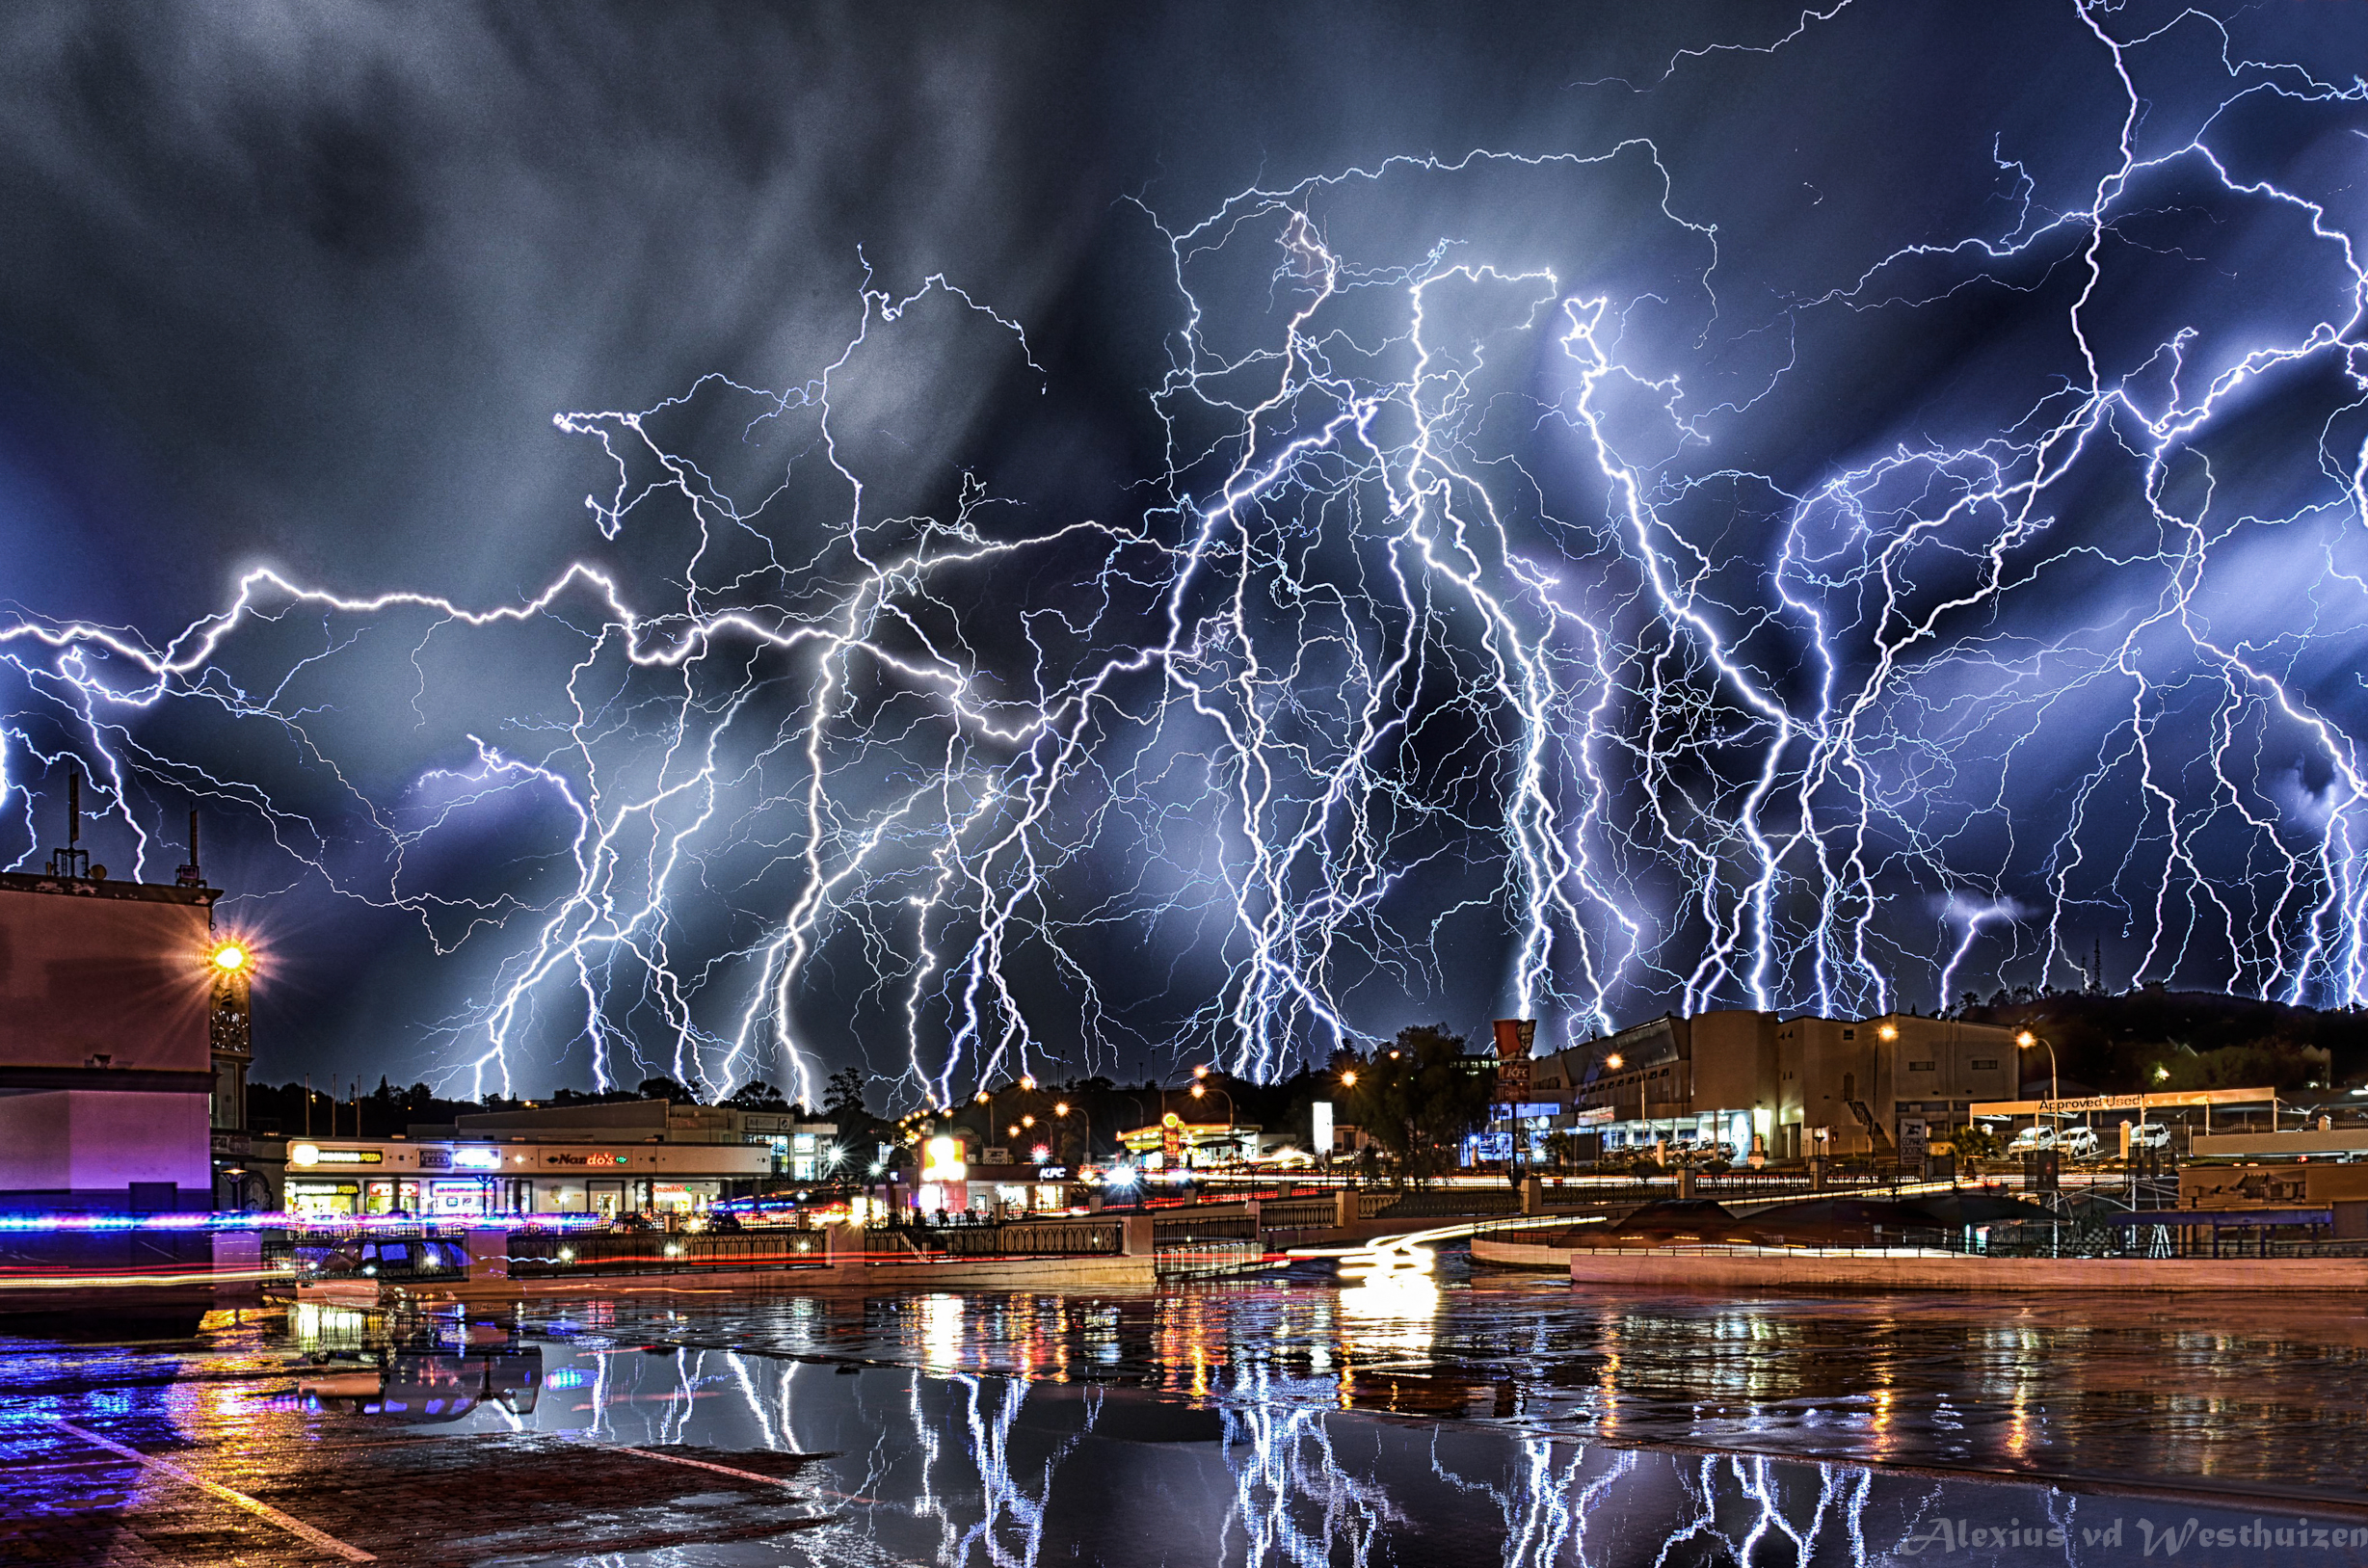 Extreme electric storm